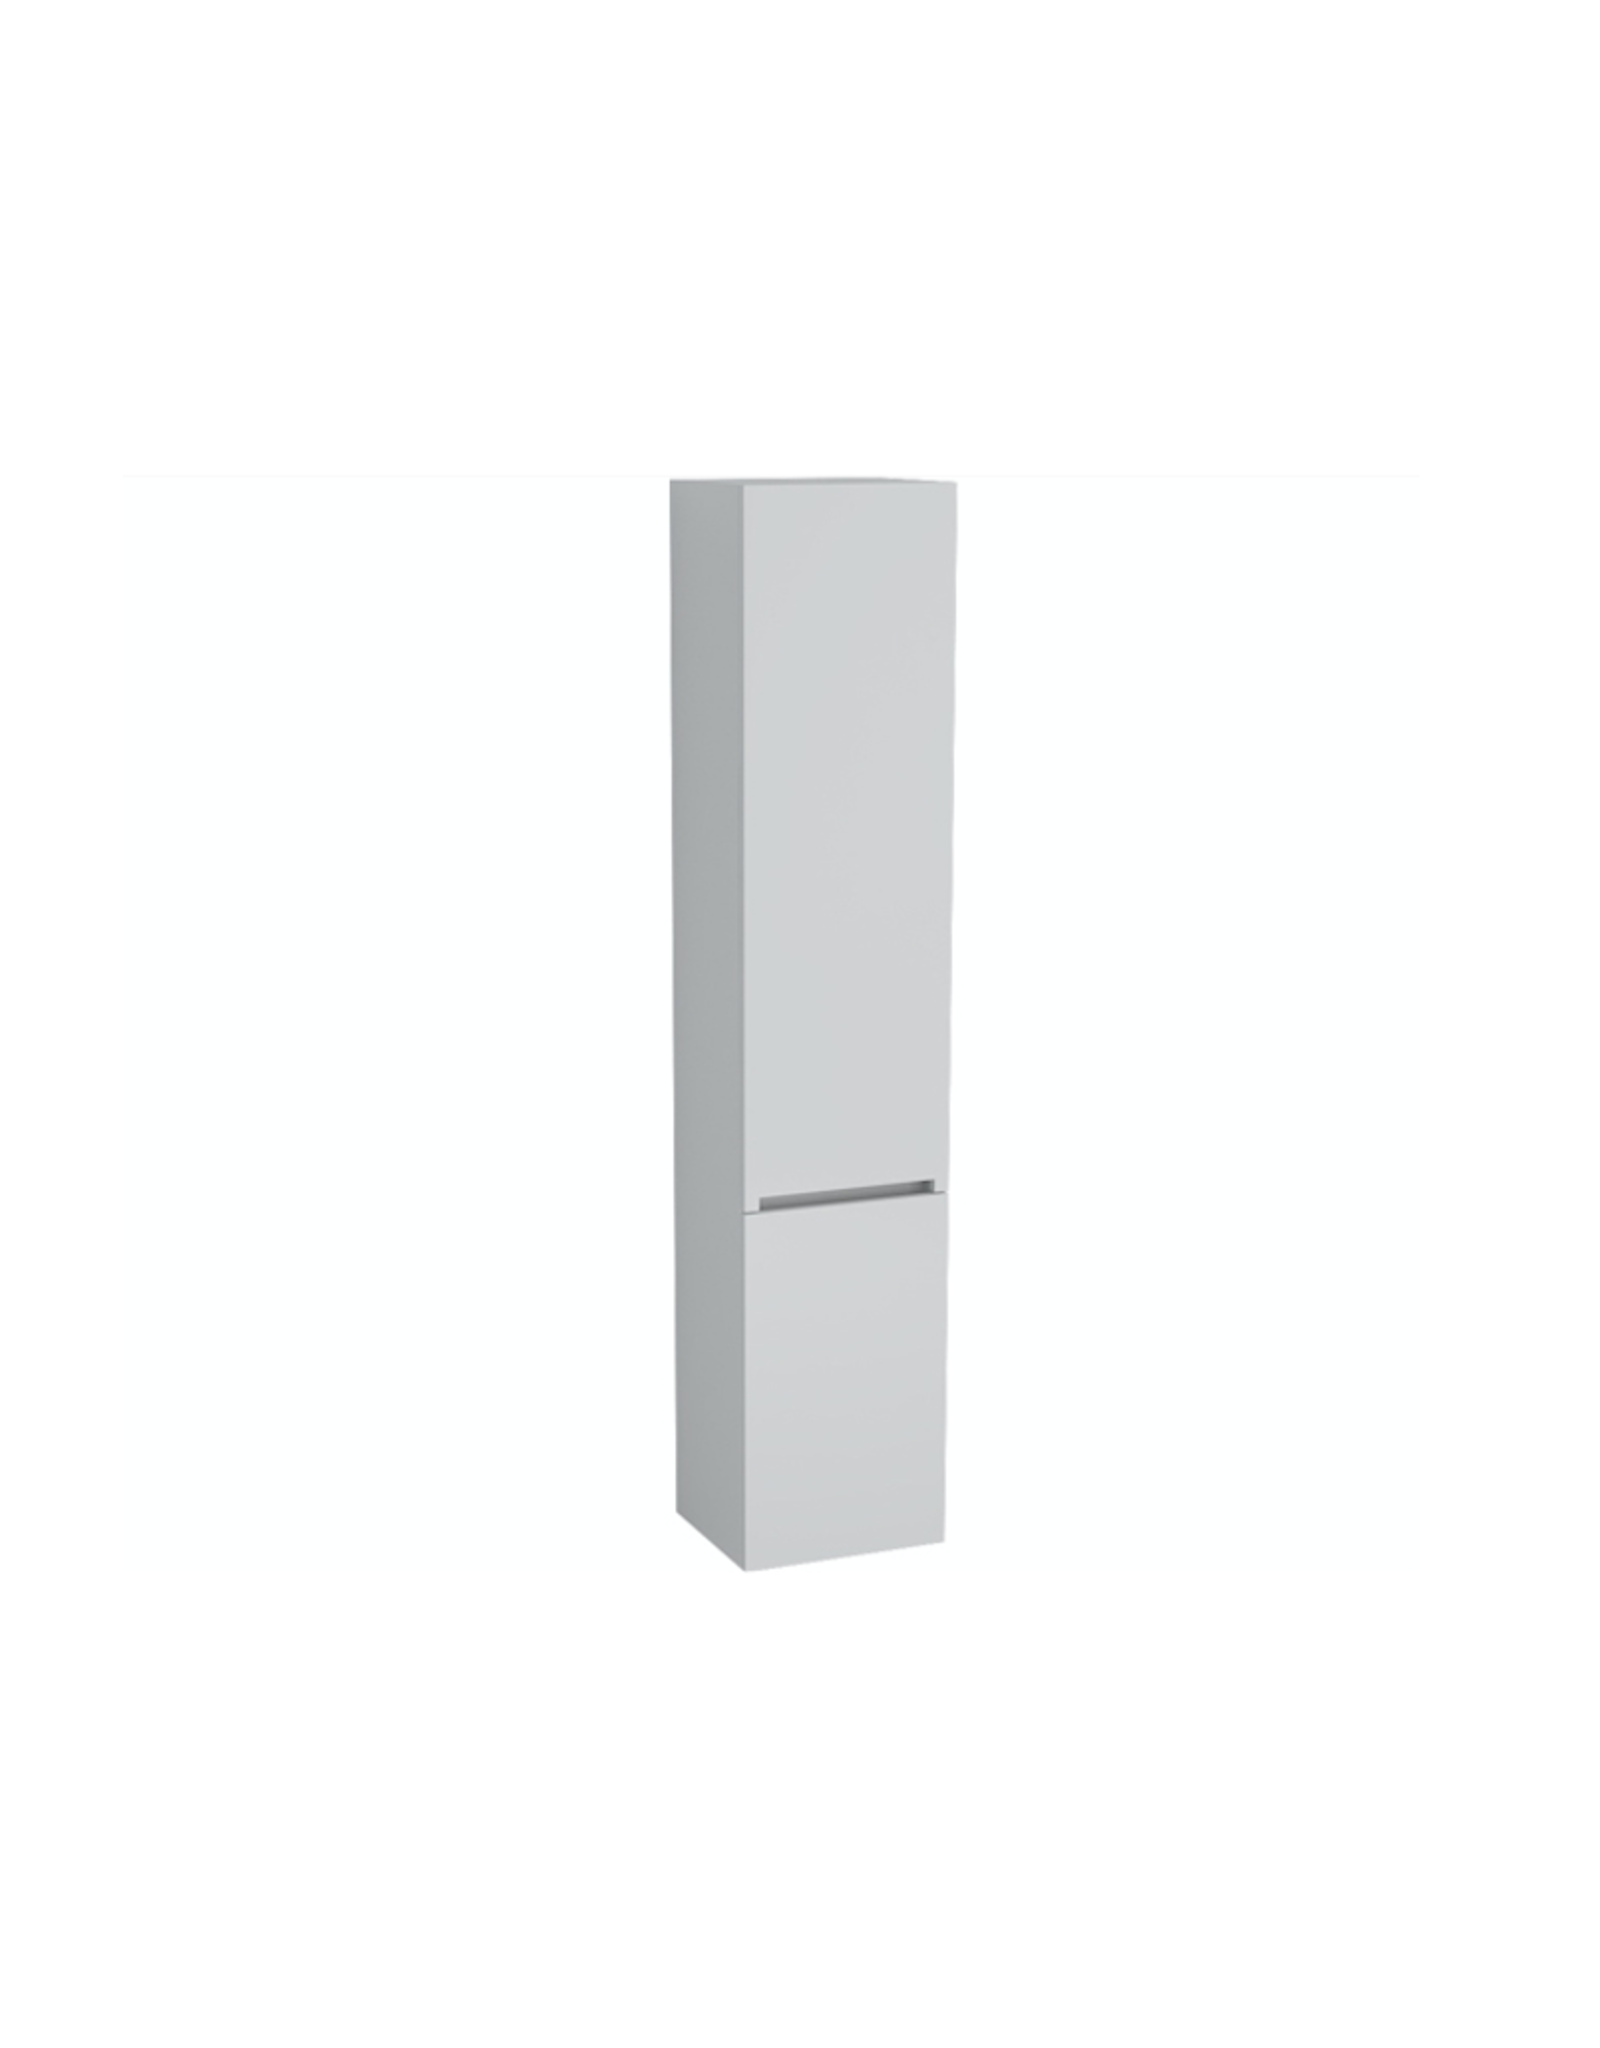 Wash Me column cabinet 35cm- outlet/product used at a fair